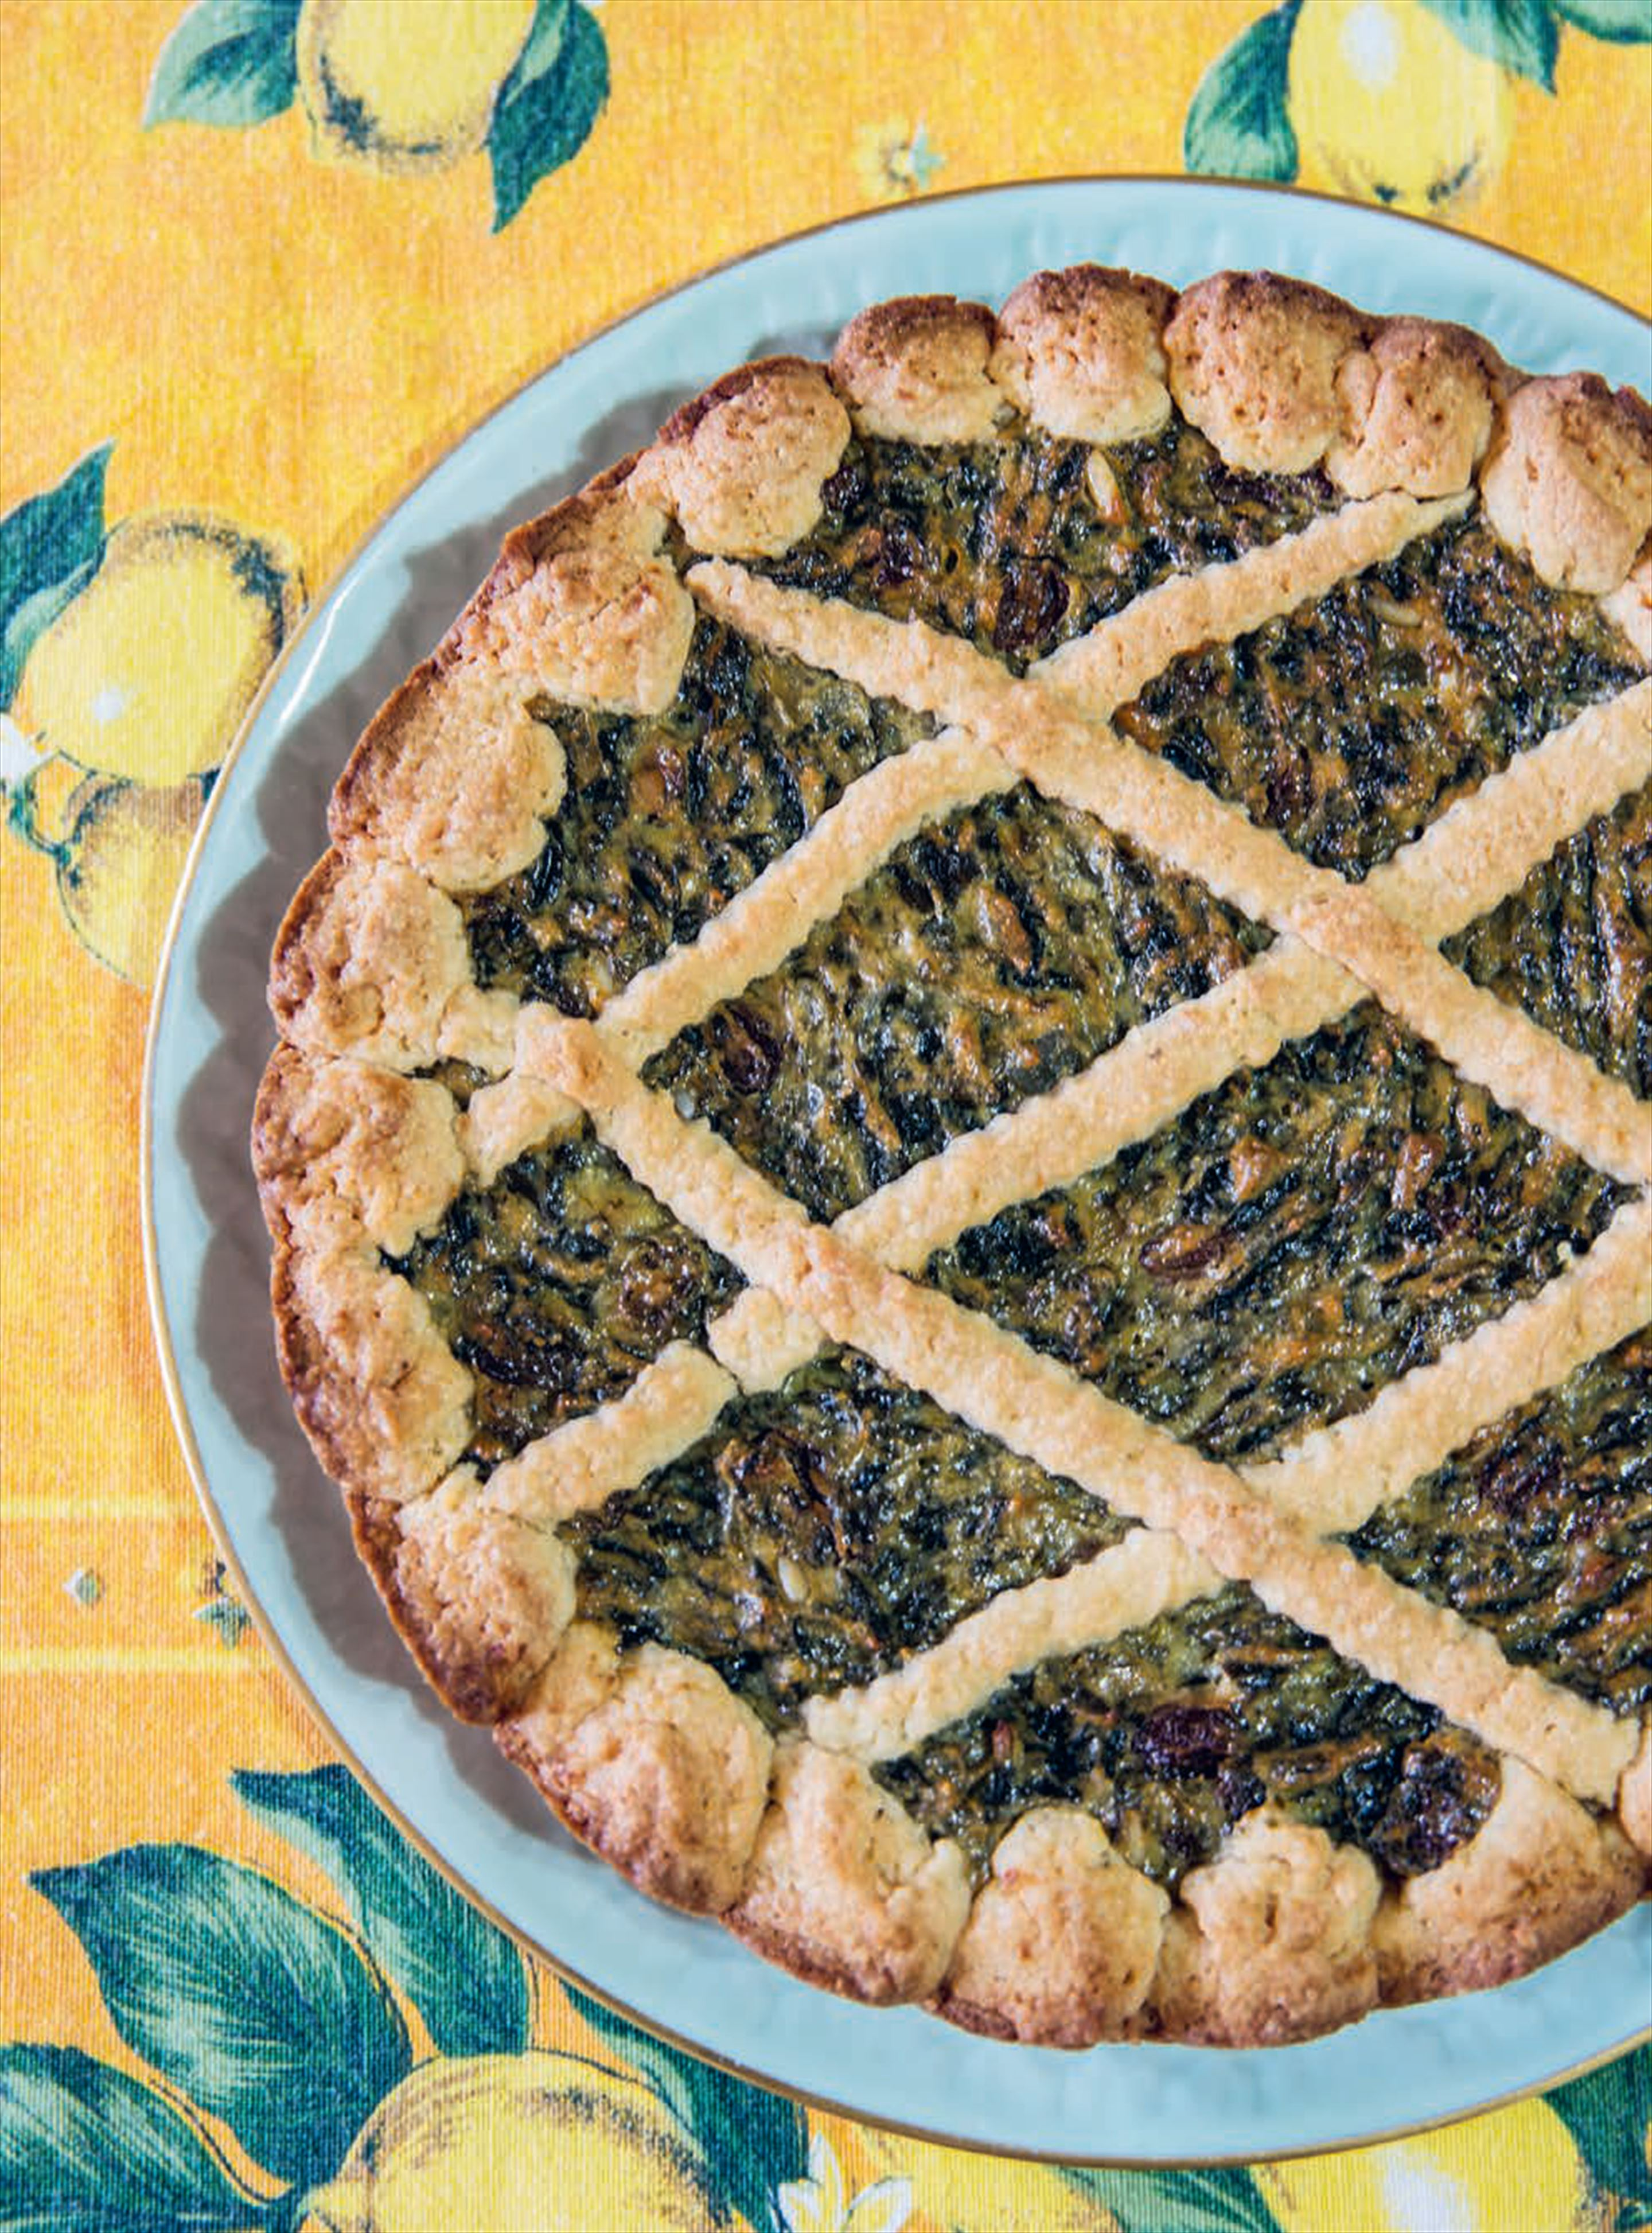 Sweet Swiss chard tart